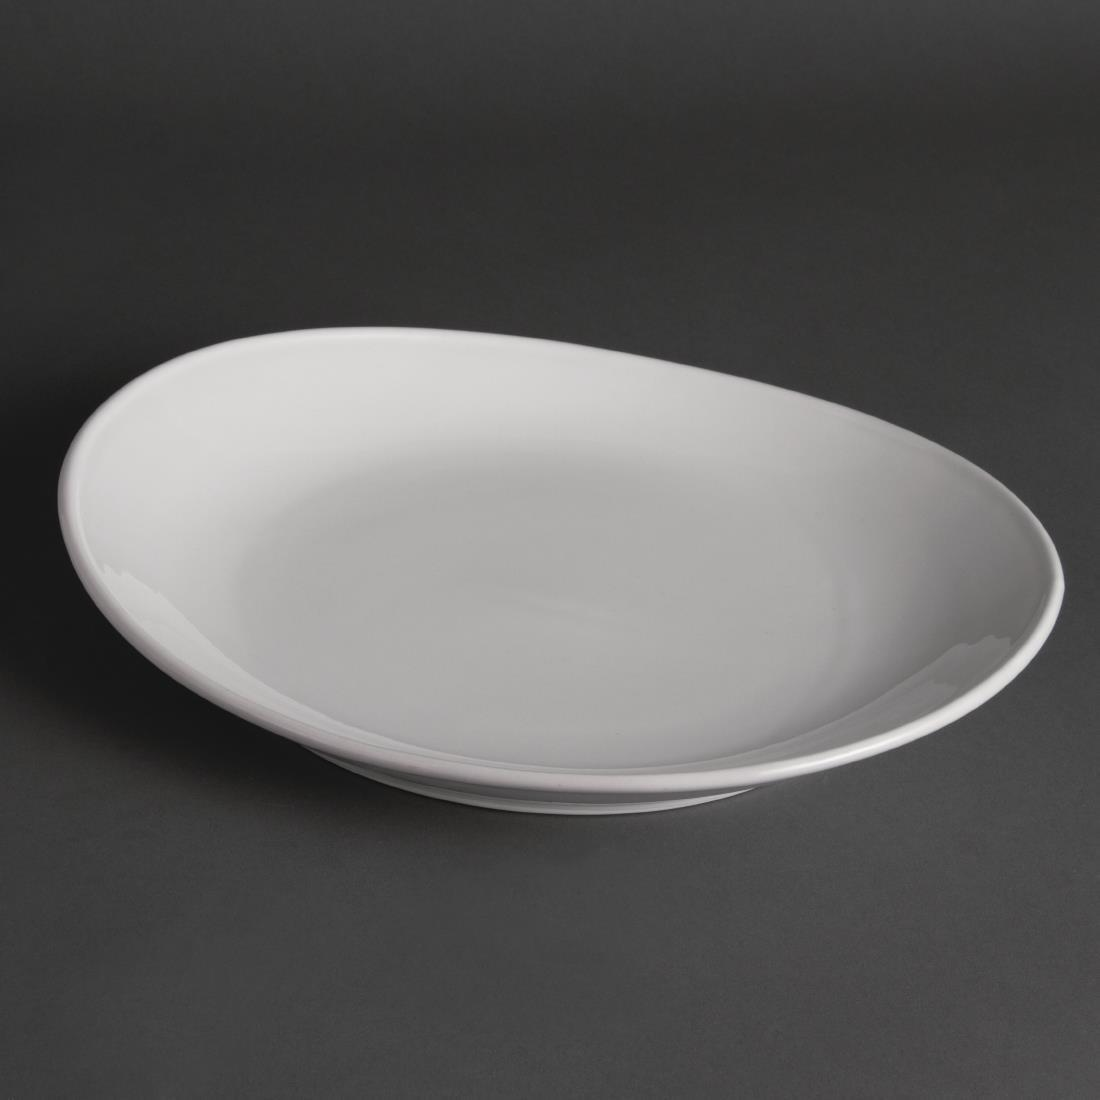 Olympia Steak Plates 300mm